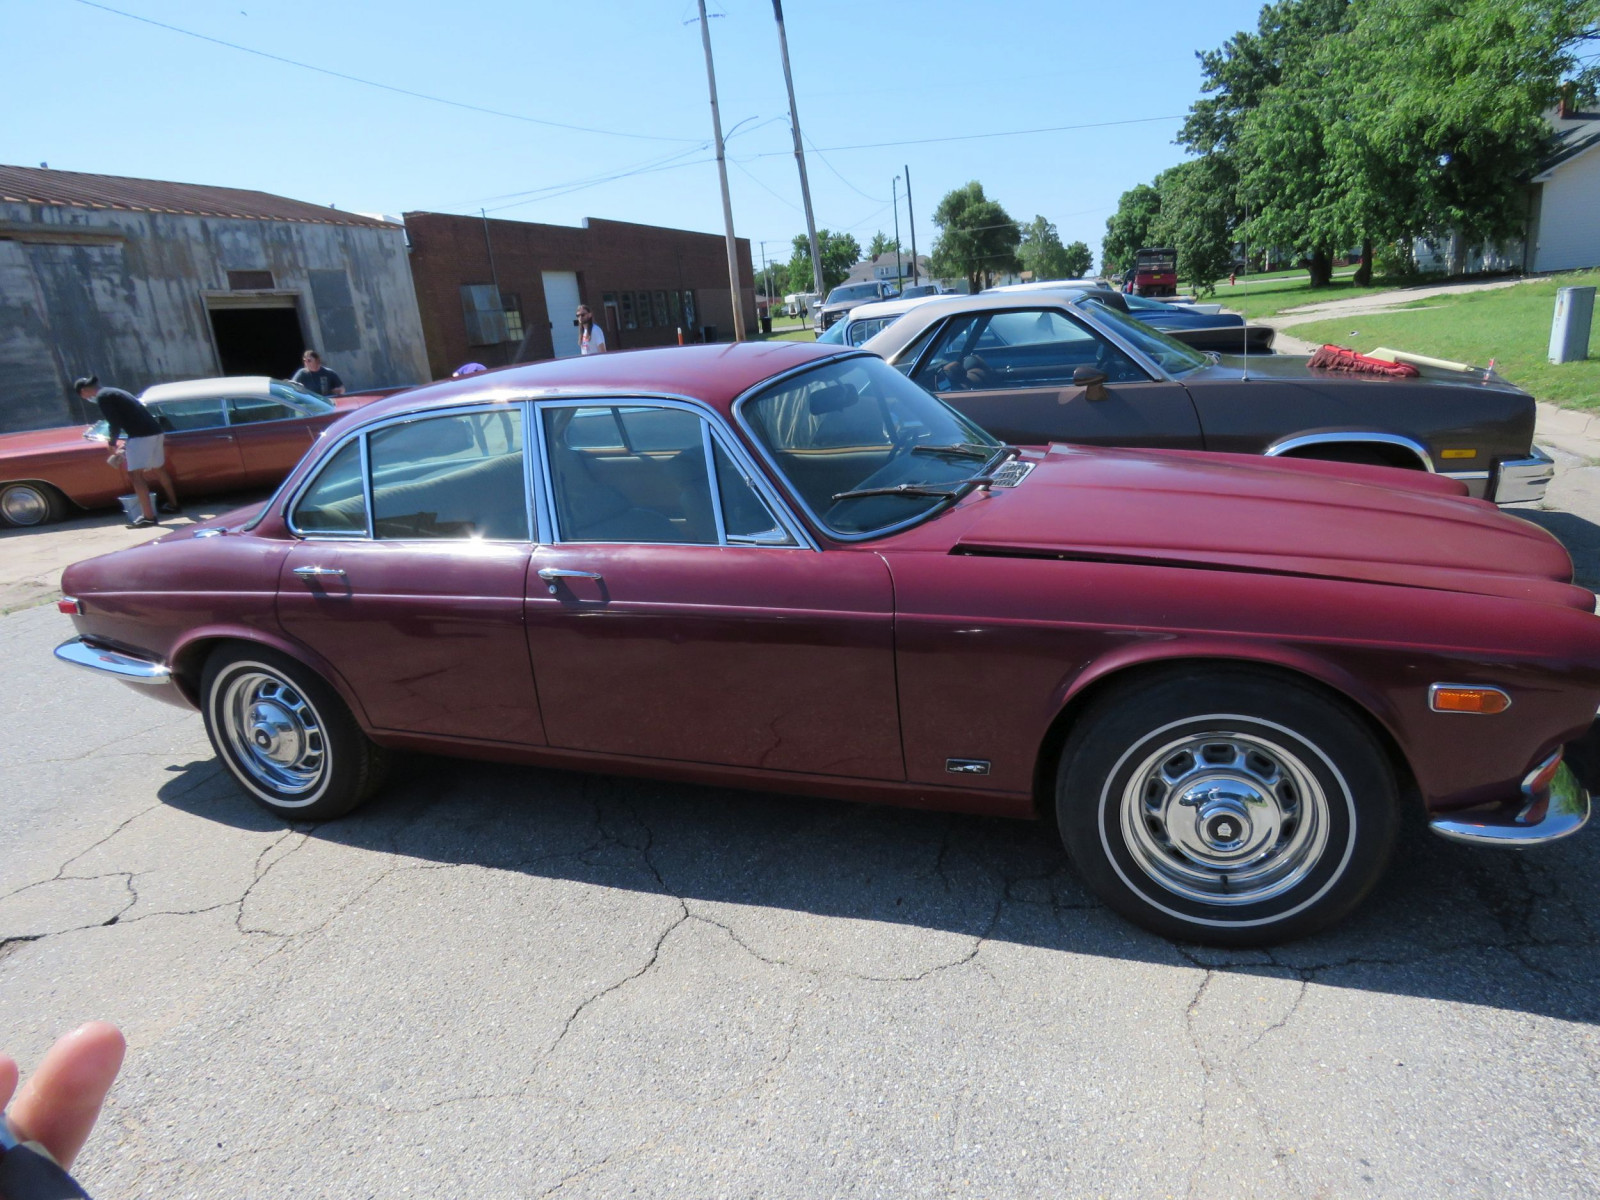 1973 JAGUAR XJ6 4DR SEDAN - Image 4